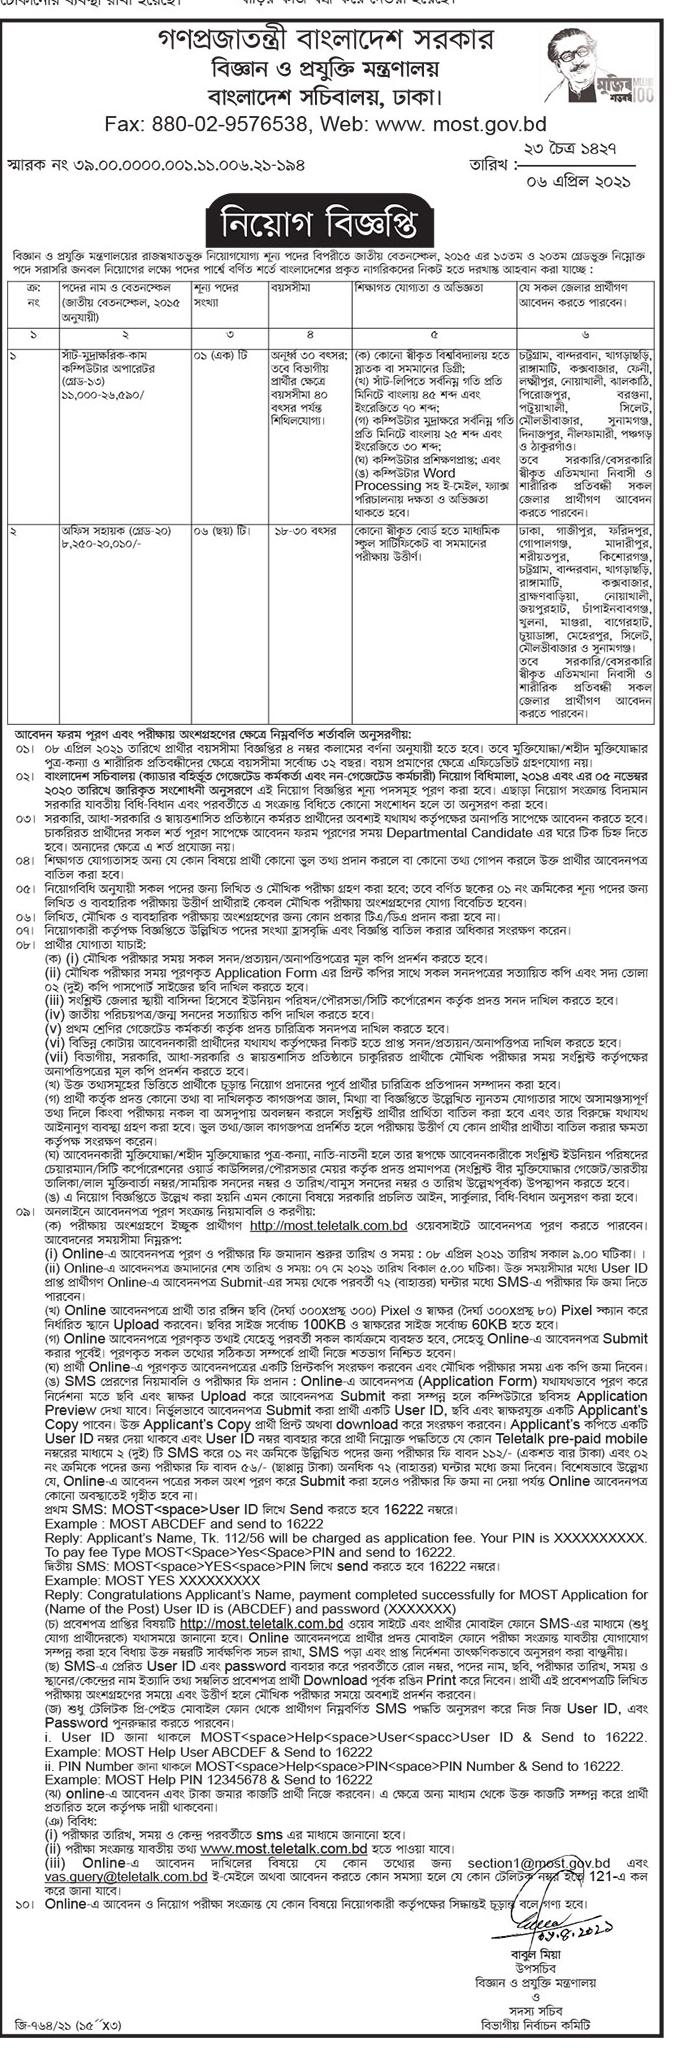 Ministry of Science and Technology (MOST) job circular 2021